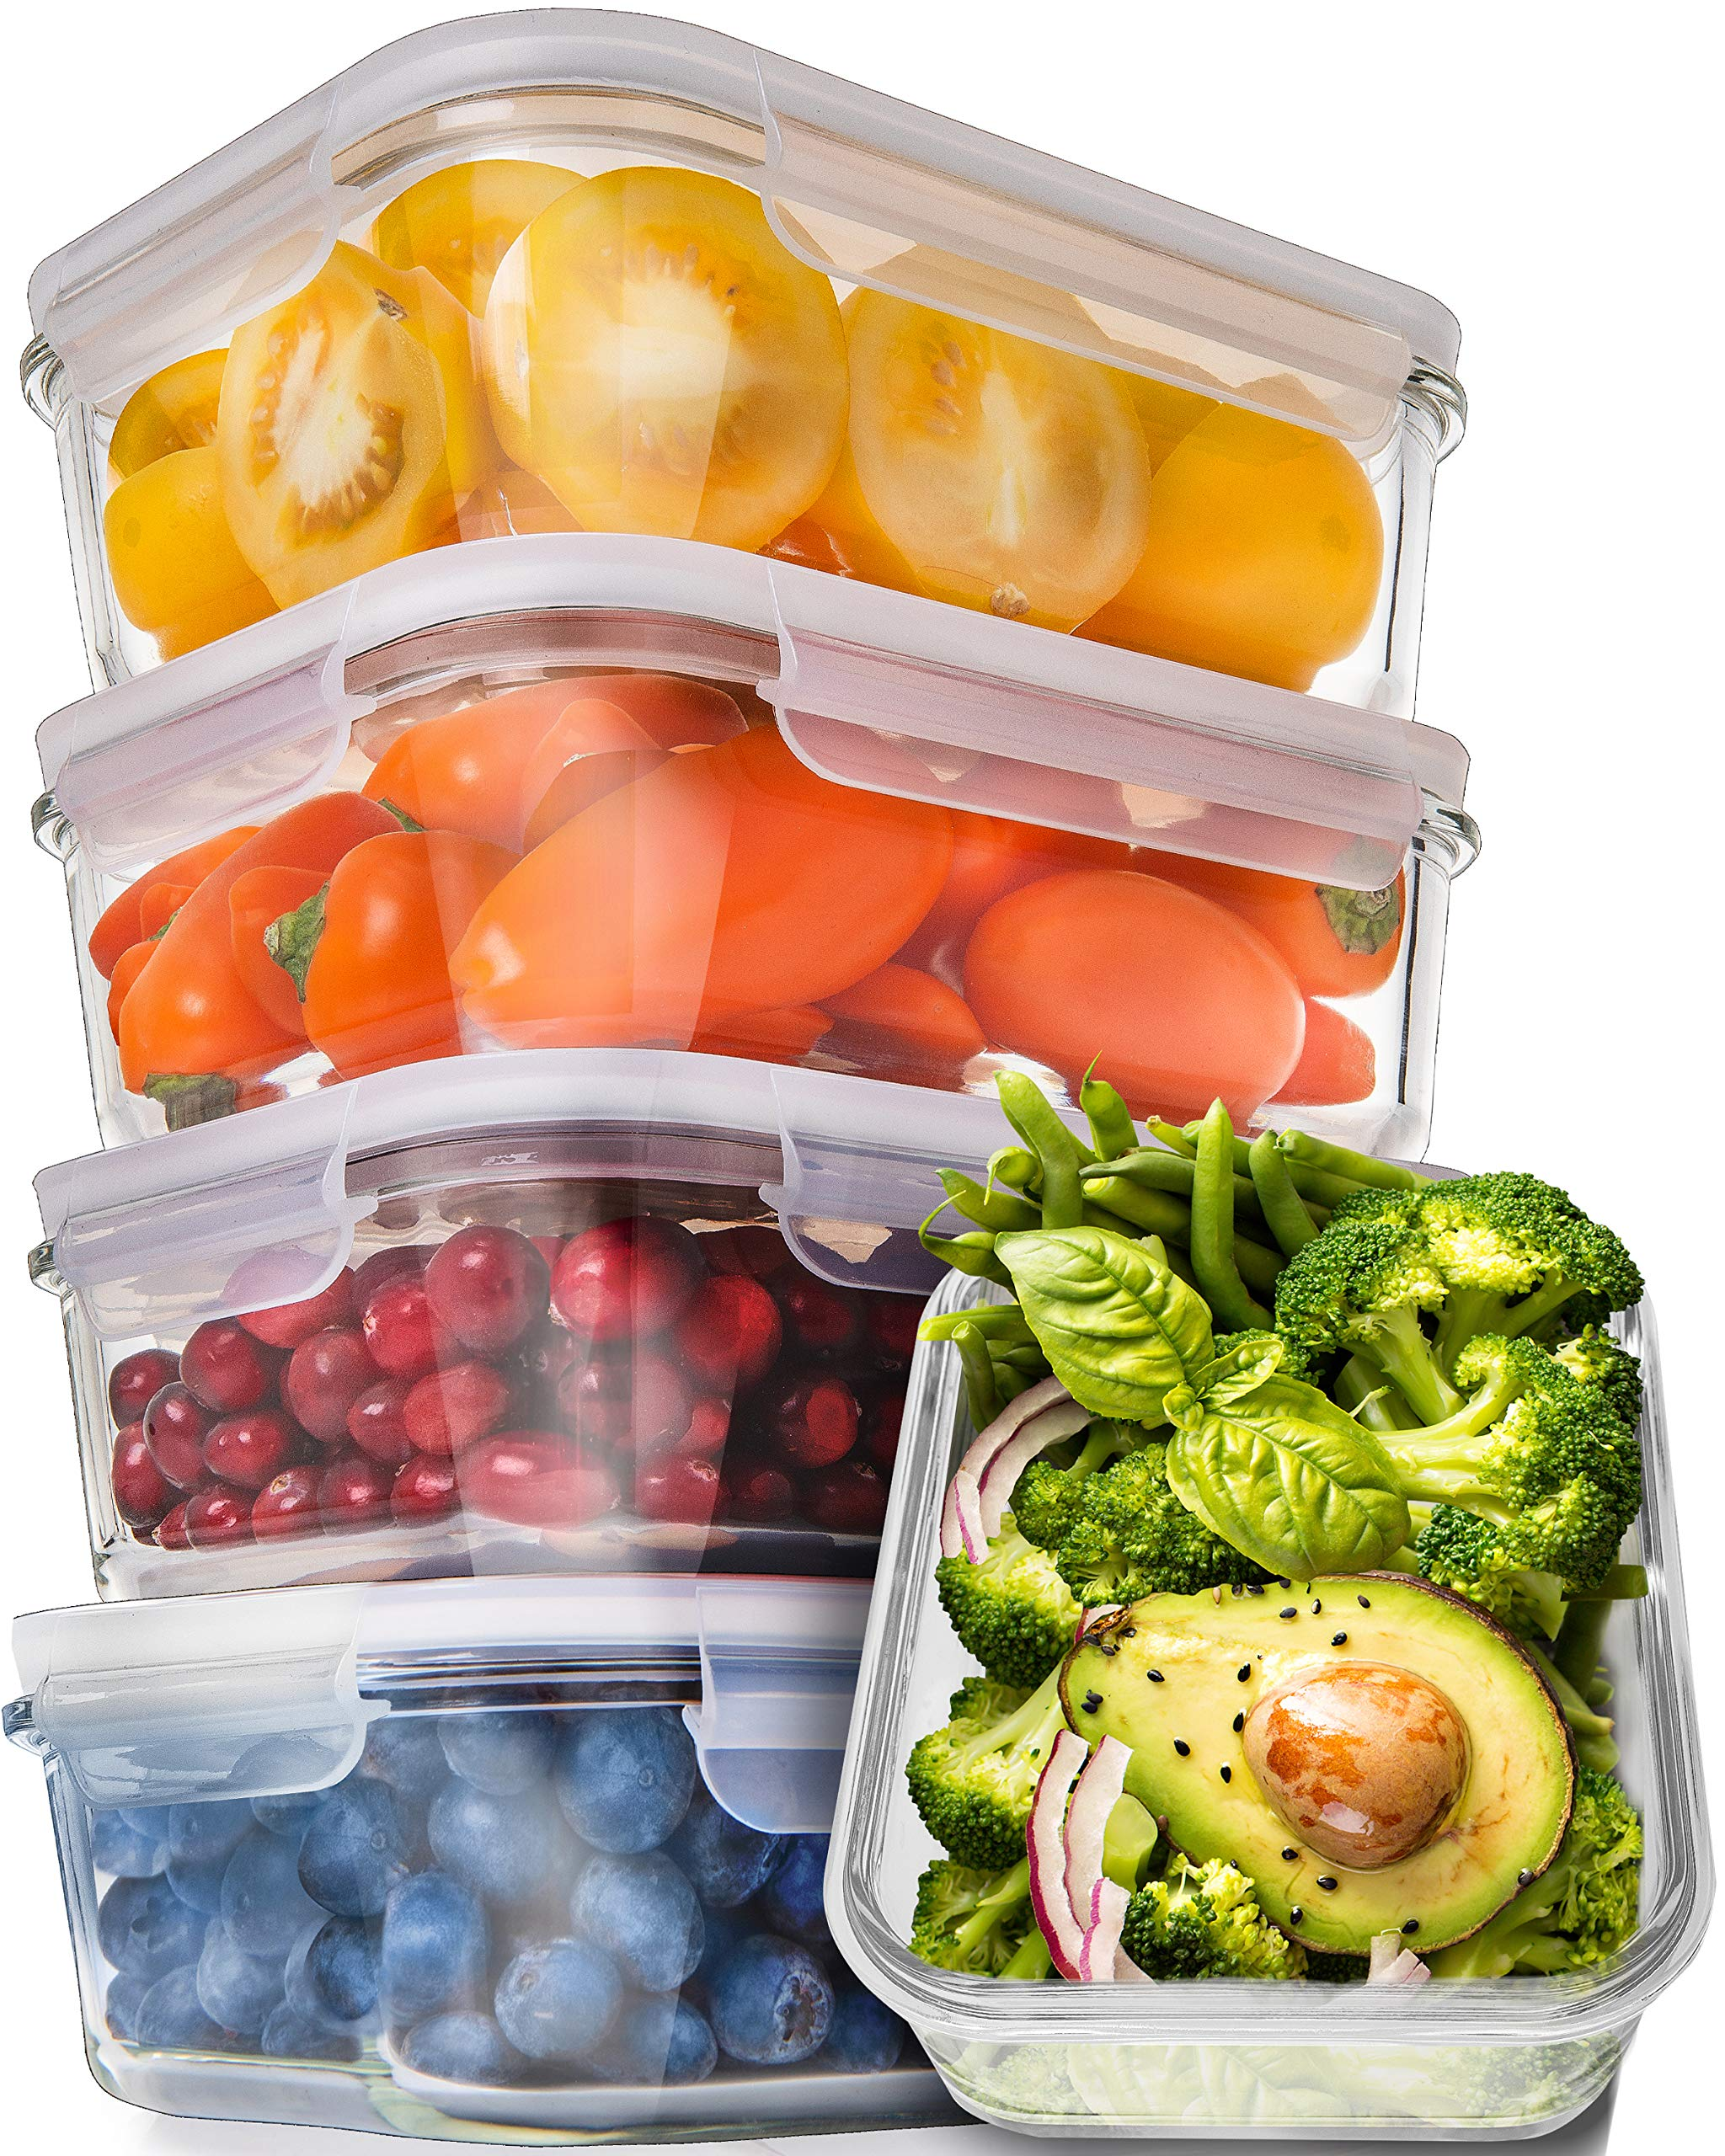 [5-Pack,30oz] Glass Meal Prep Containers – Food Prep Containers with Lids Meal Prep – Glass Food Storage Containers Airtight – Lunch Containers Portion Control Containers – BPA Free Container